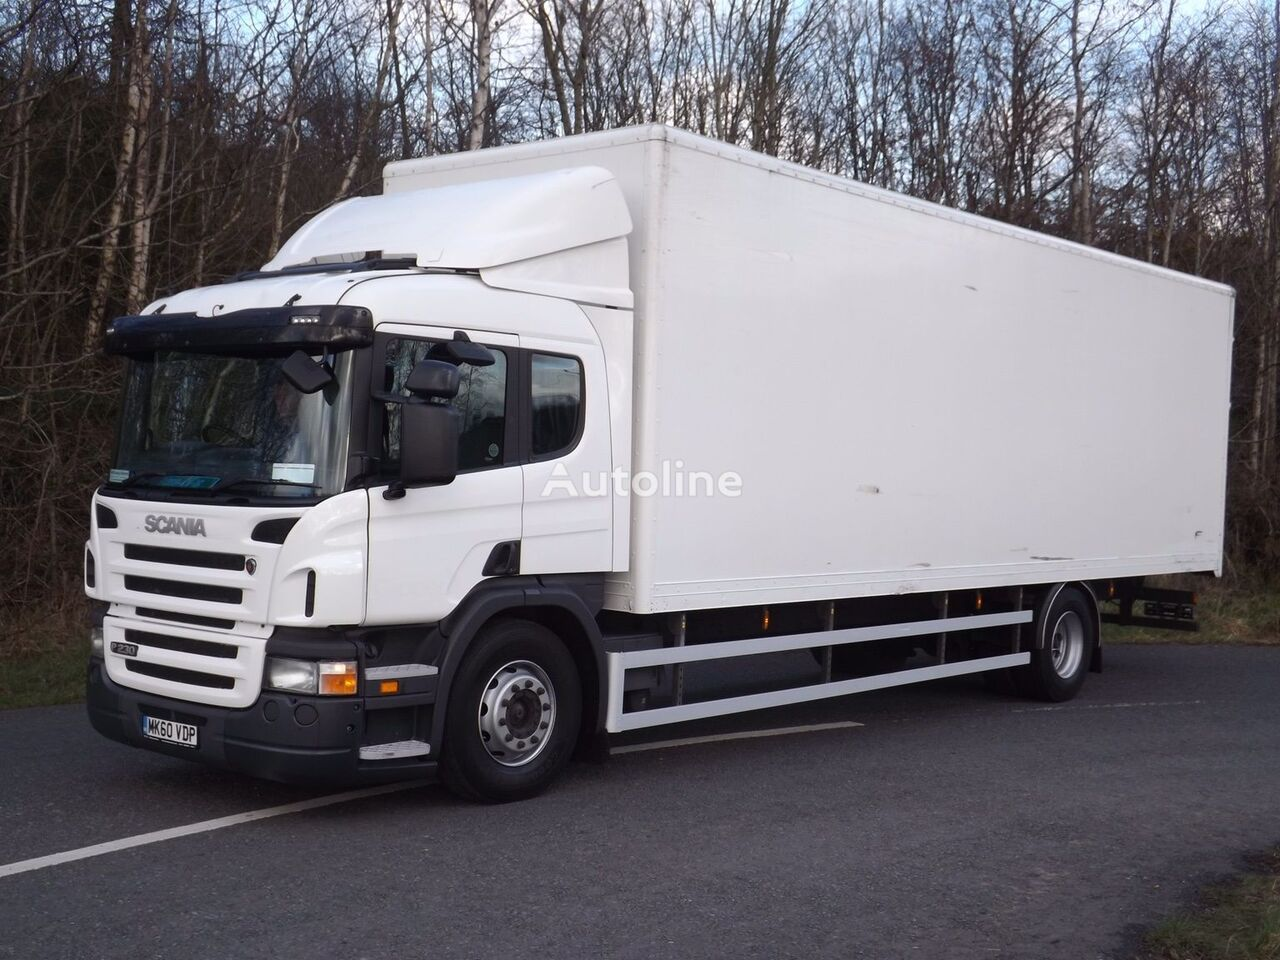 SCANIA P230 closed box truck